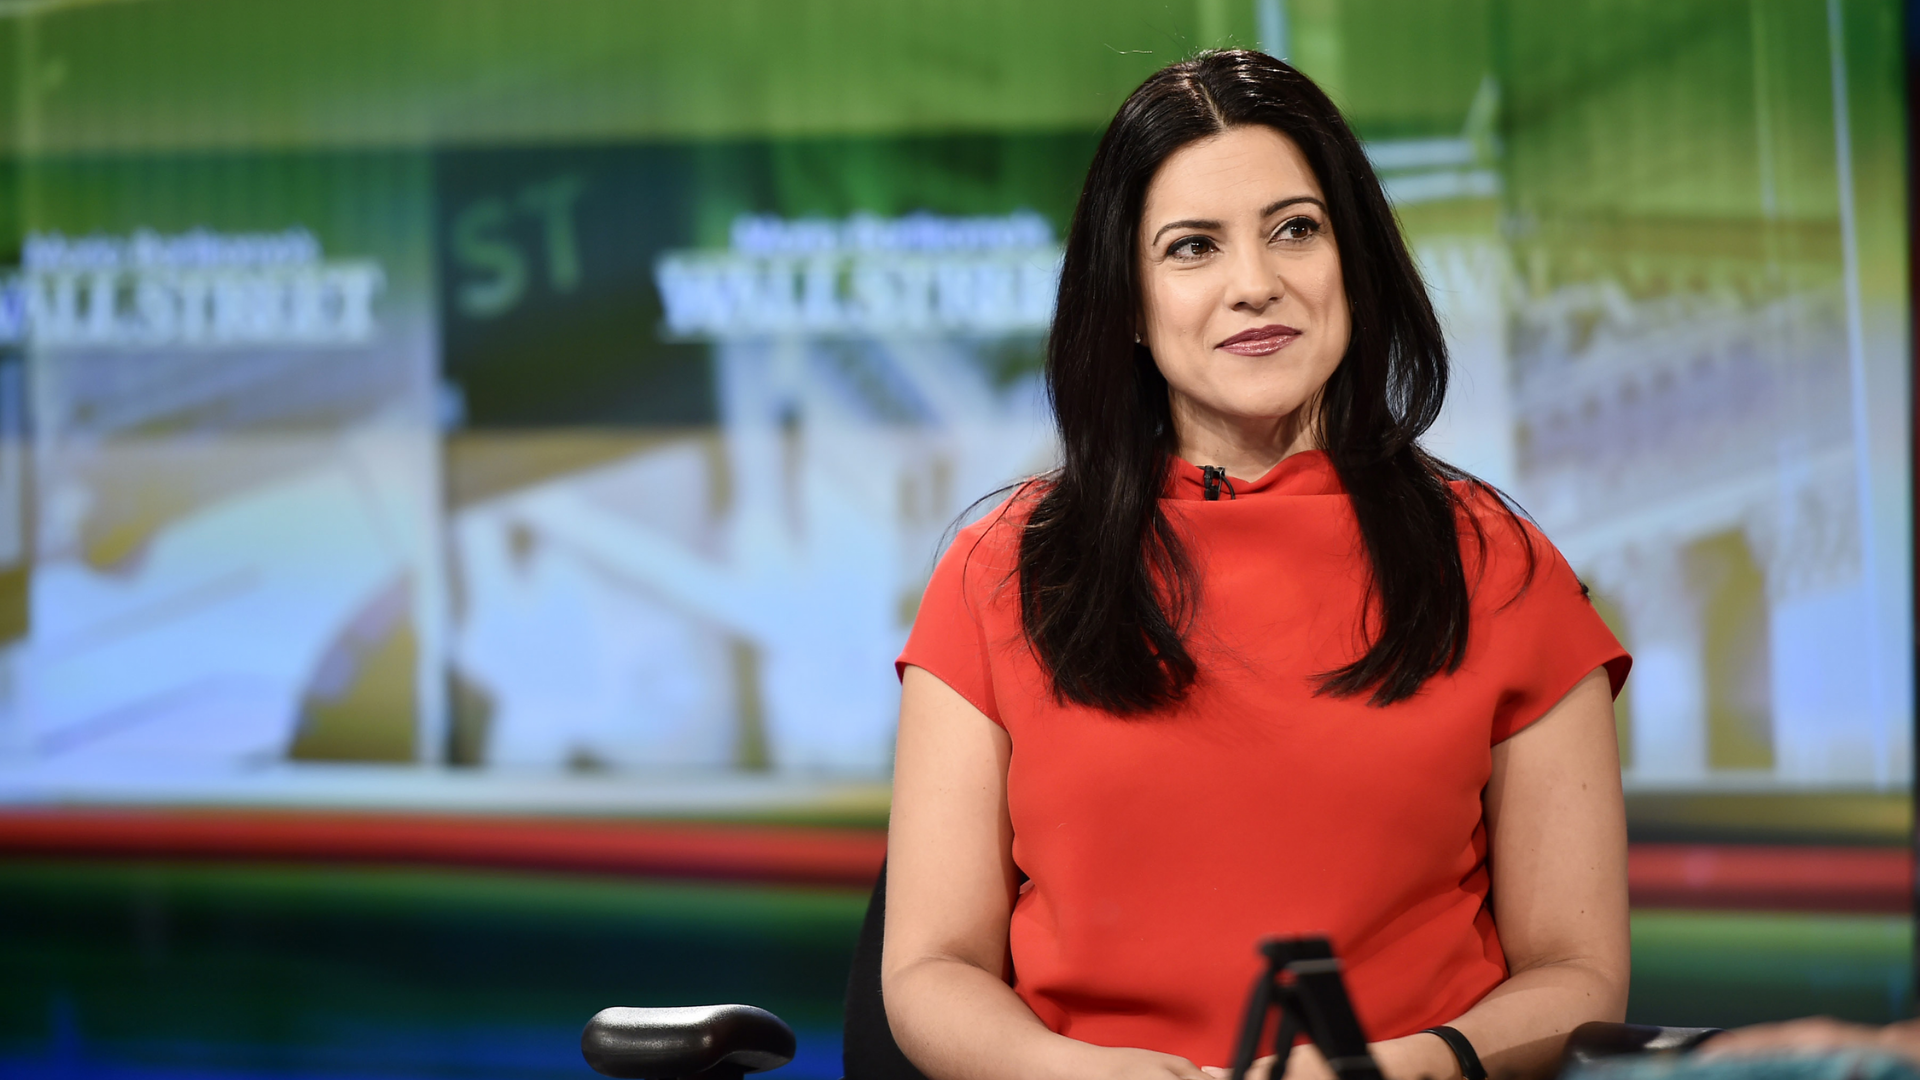 Reshma Saujani on a news show, wearing a red, short sleeved top, with long brown hair. There is a green news screen in the background.